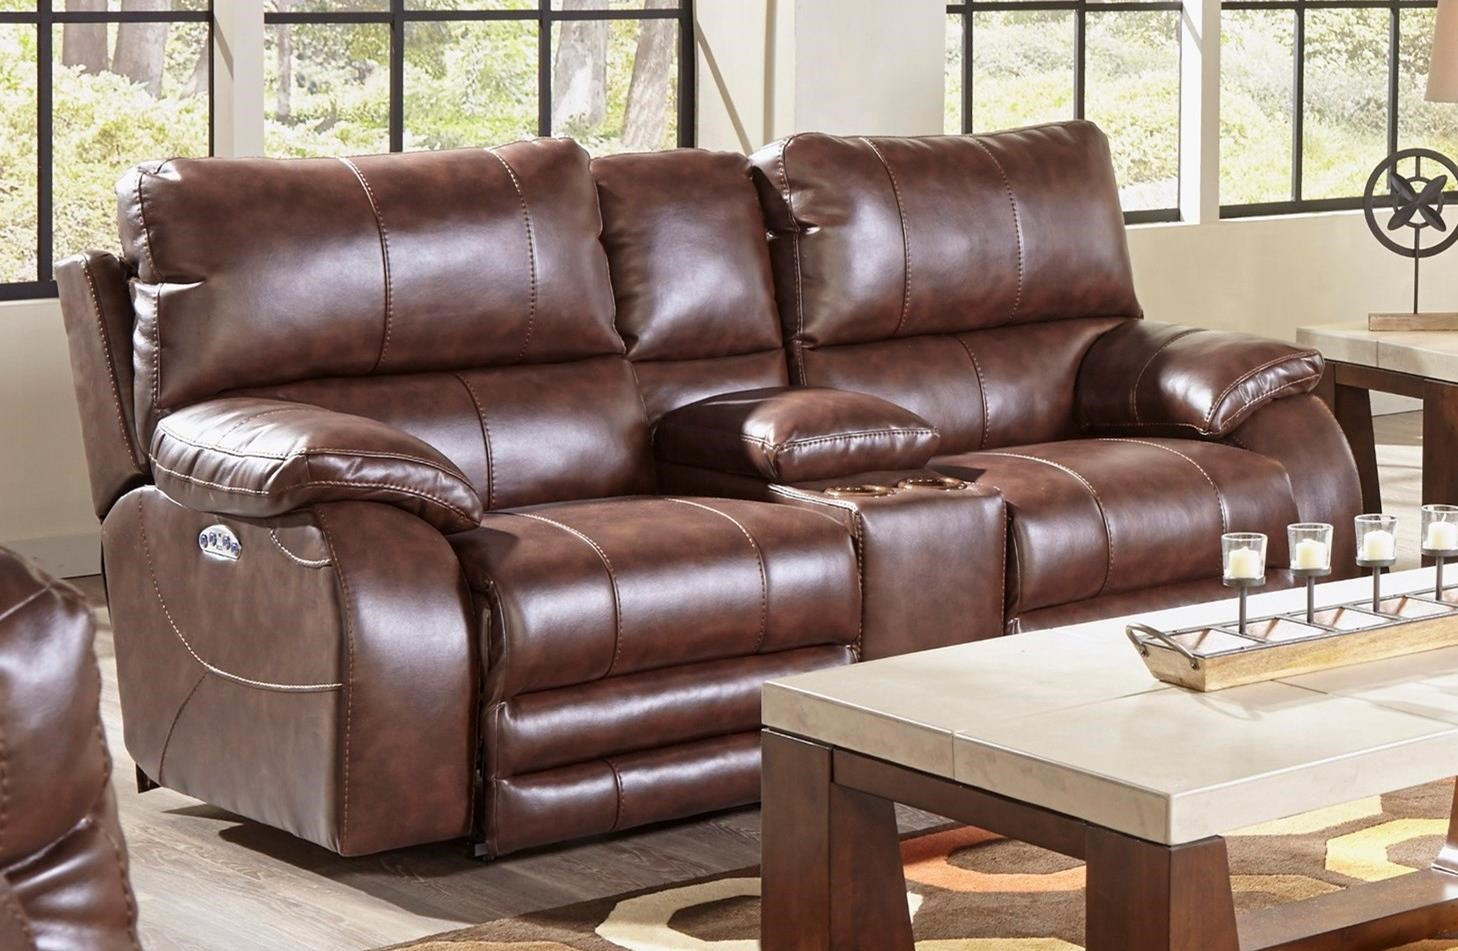 catnapper sofa and loveseat american leather sleeper cheap reclining collection 64279